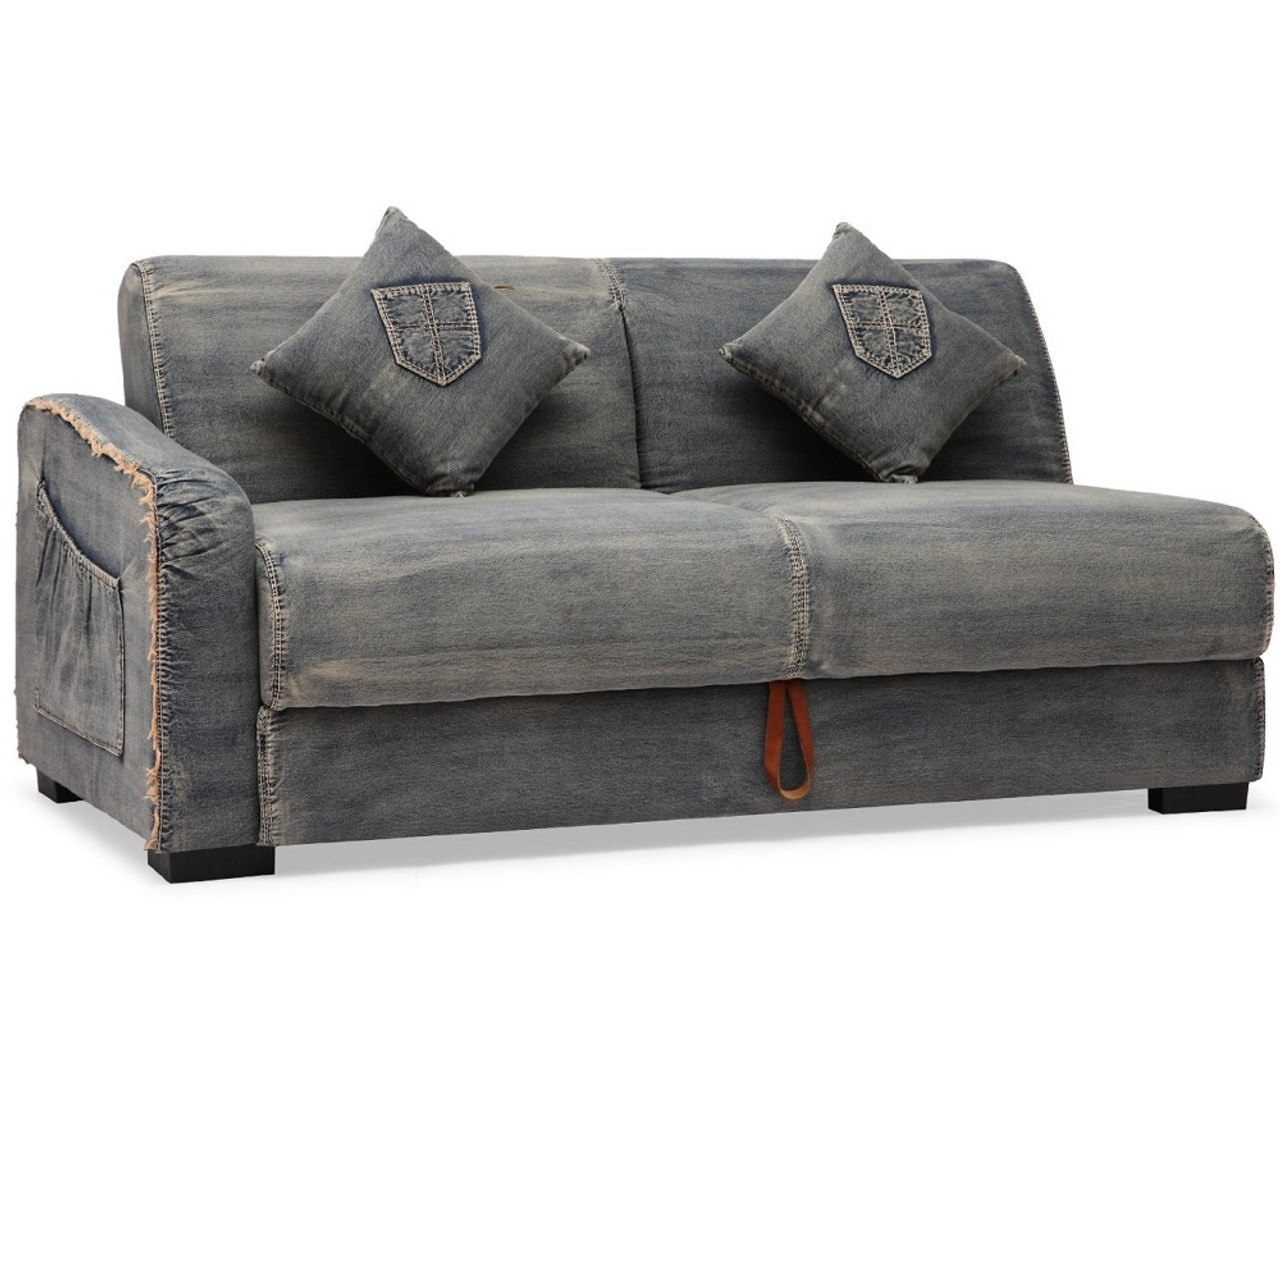 Peachy Colins Denim Sleeper Sectional Sofa Gmtry Best Dining Table And Chair Ideas Images Gmtryco